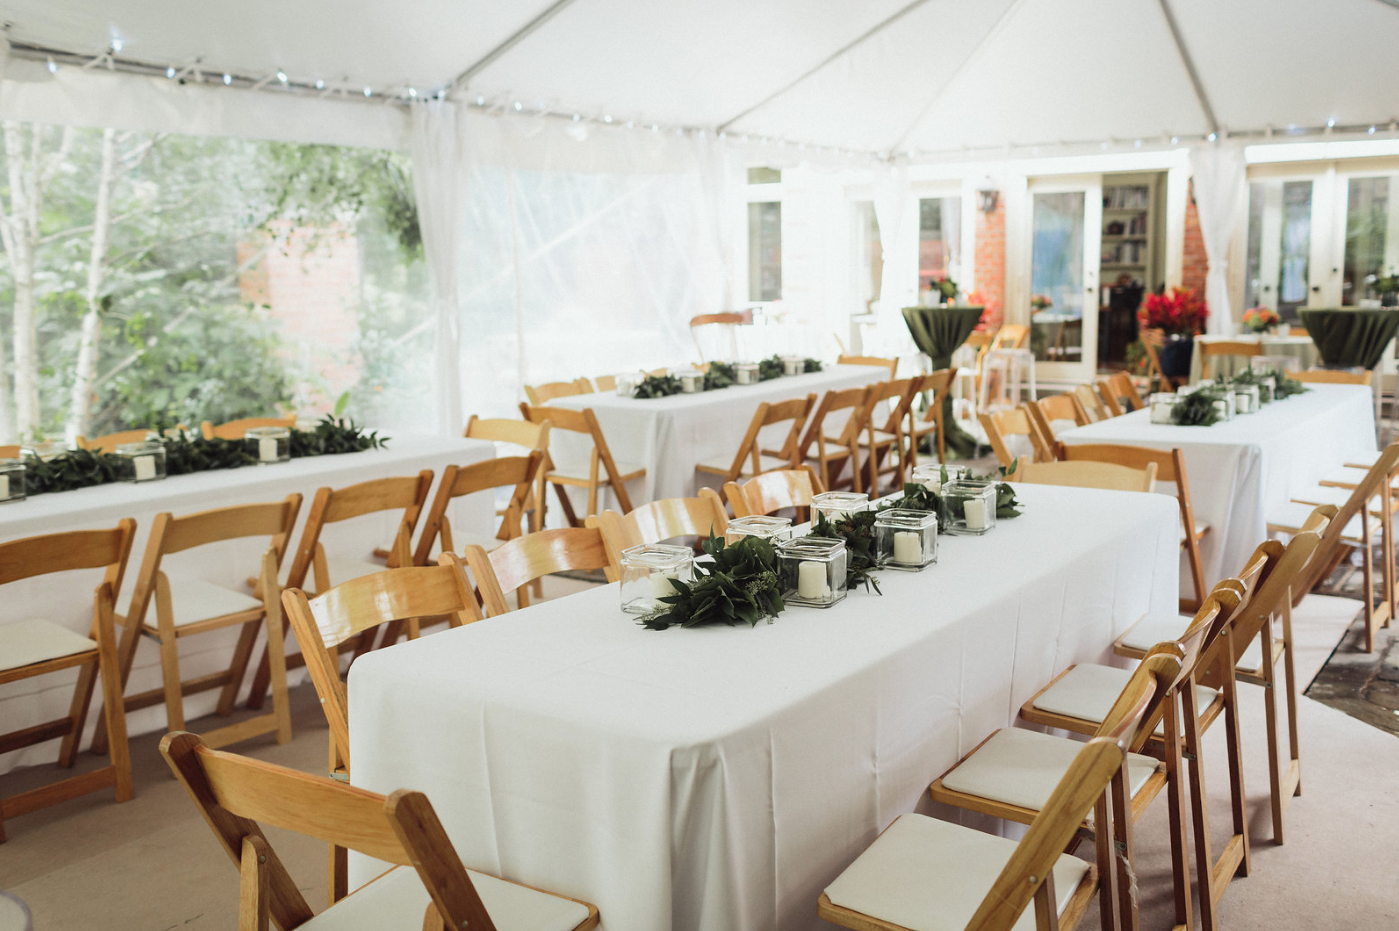 Backyard Wedding How To pros and cons of having a backyard wedding in toronto | daniel et daniel